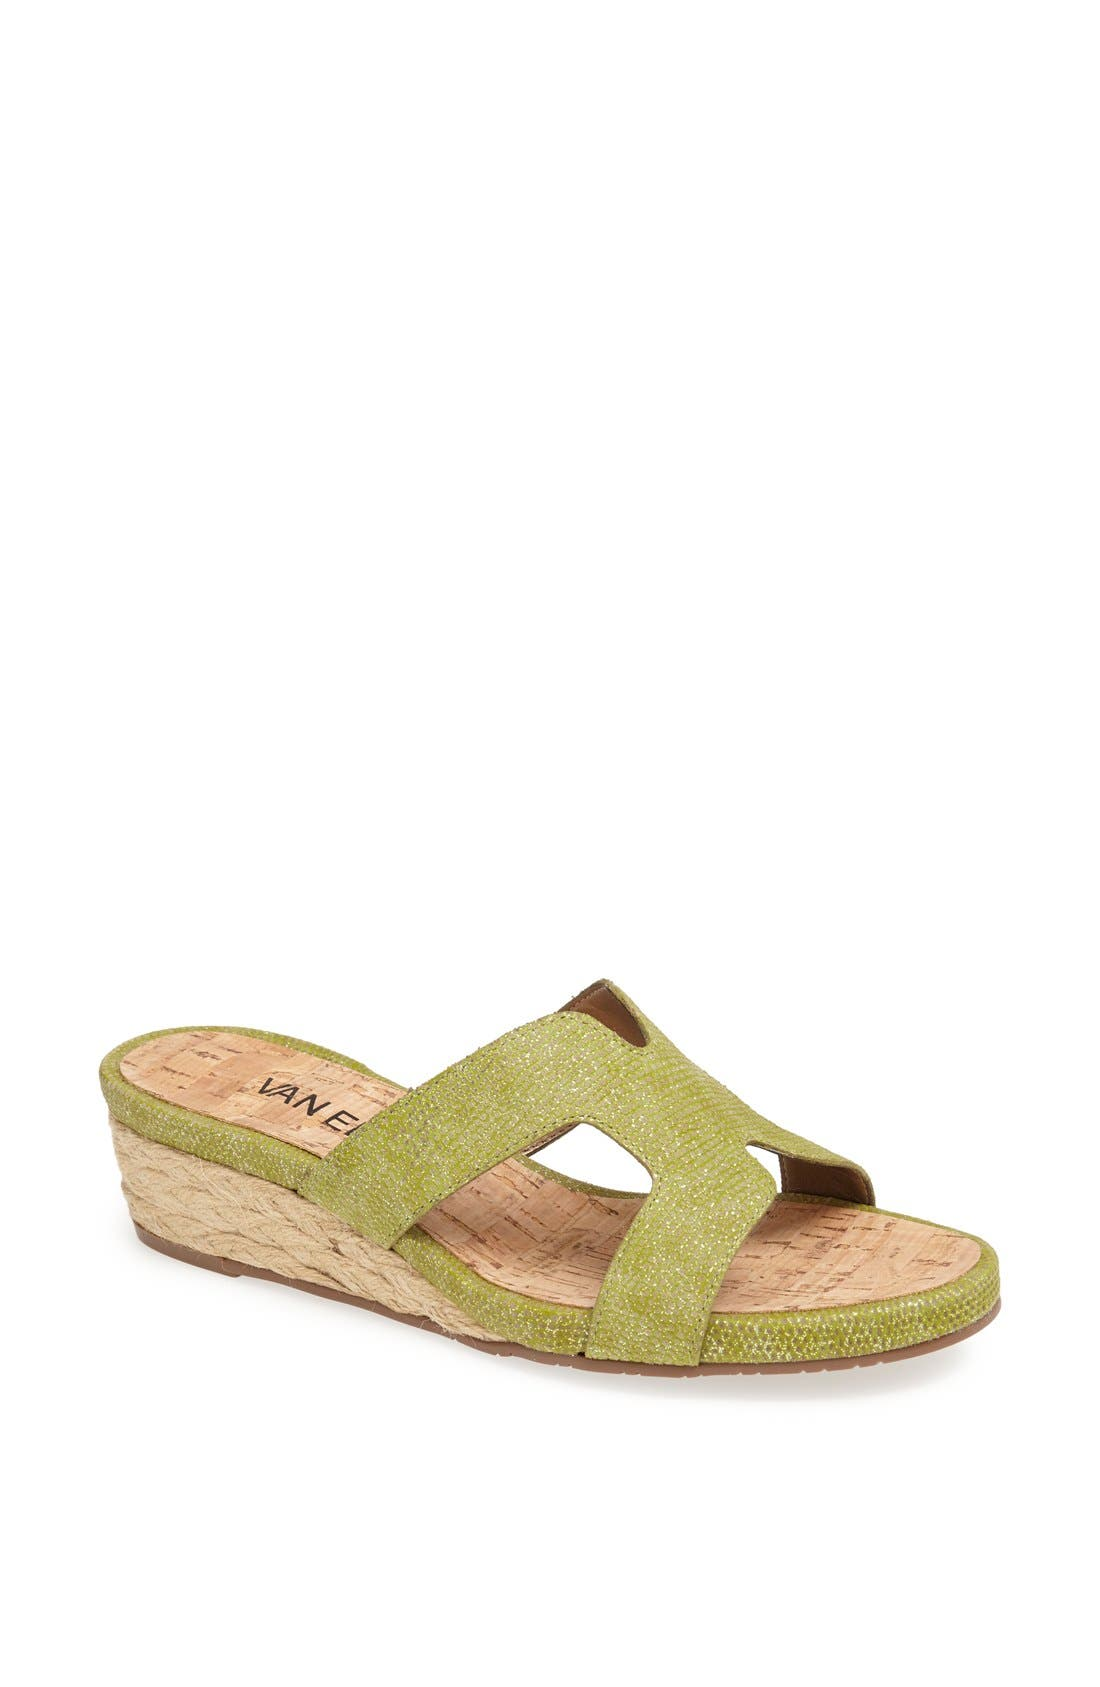 Alternate Image 1 Selected - VANELi 'Kallita' Sandal